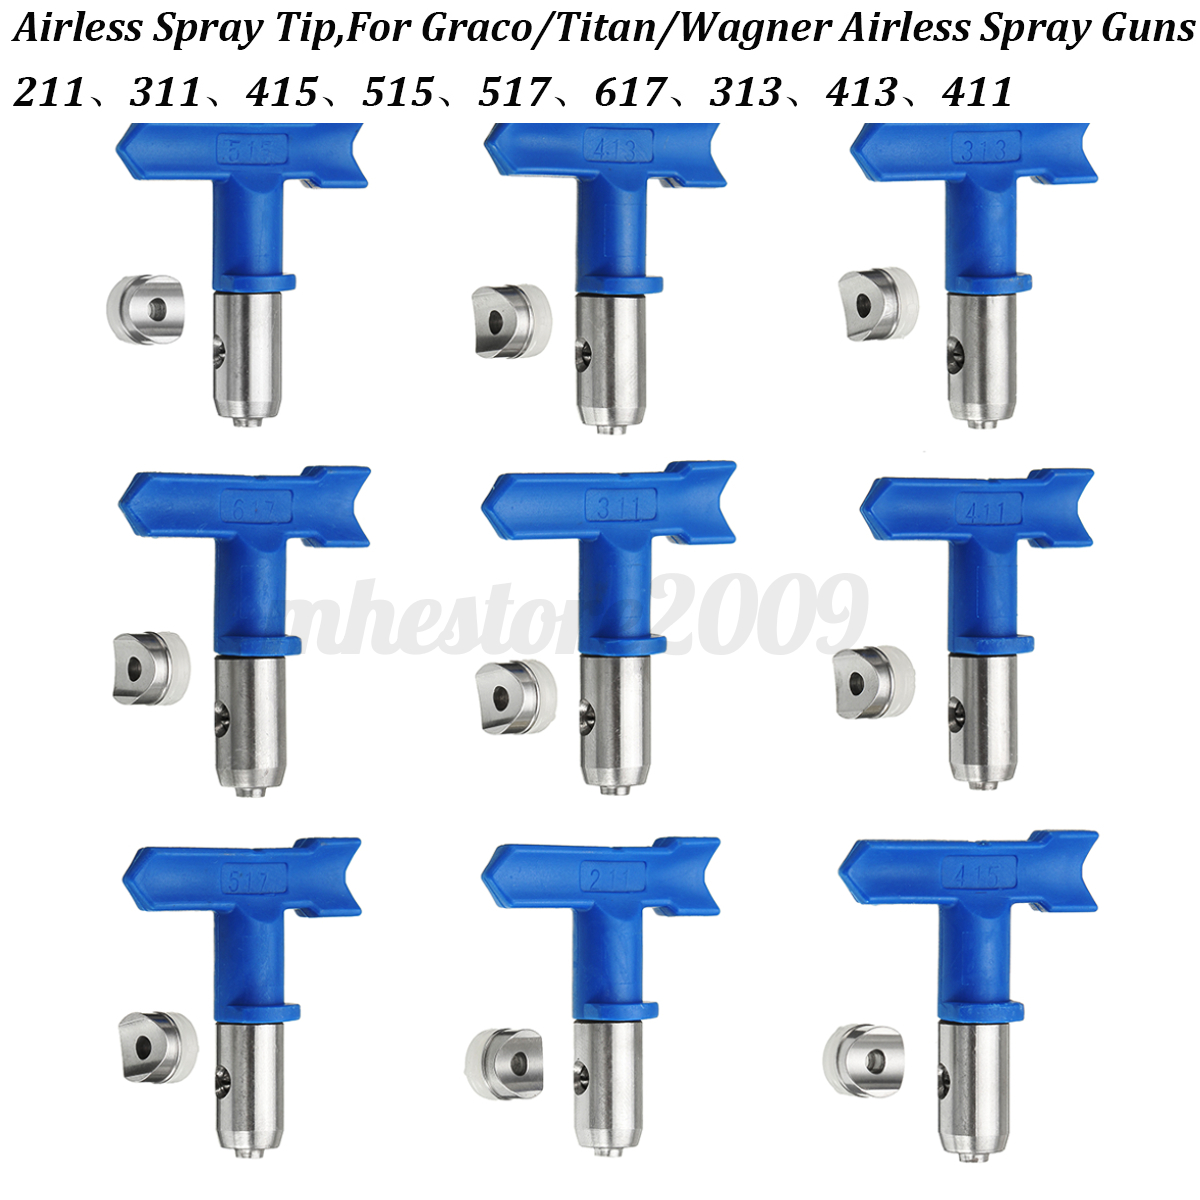 2 3 4 5 6 series airless spray gun tip for graco titan. Black Bedroom Furniture Sets. Home Design Ideas